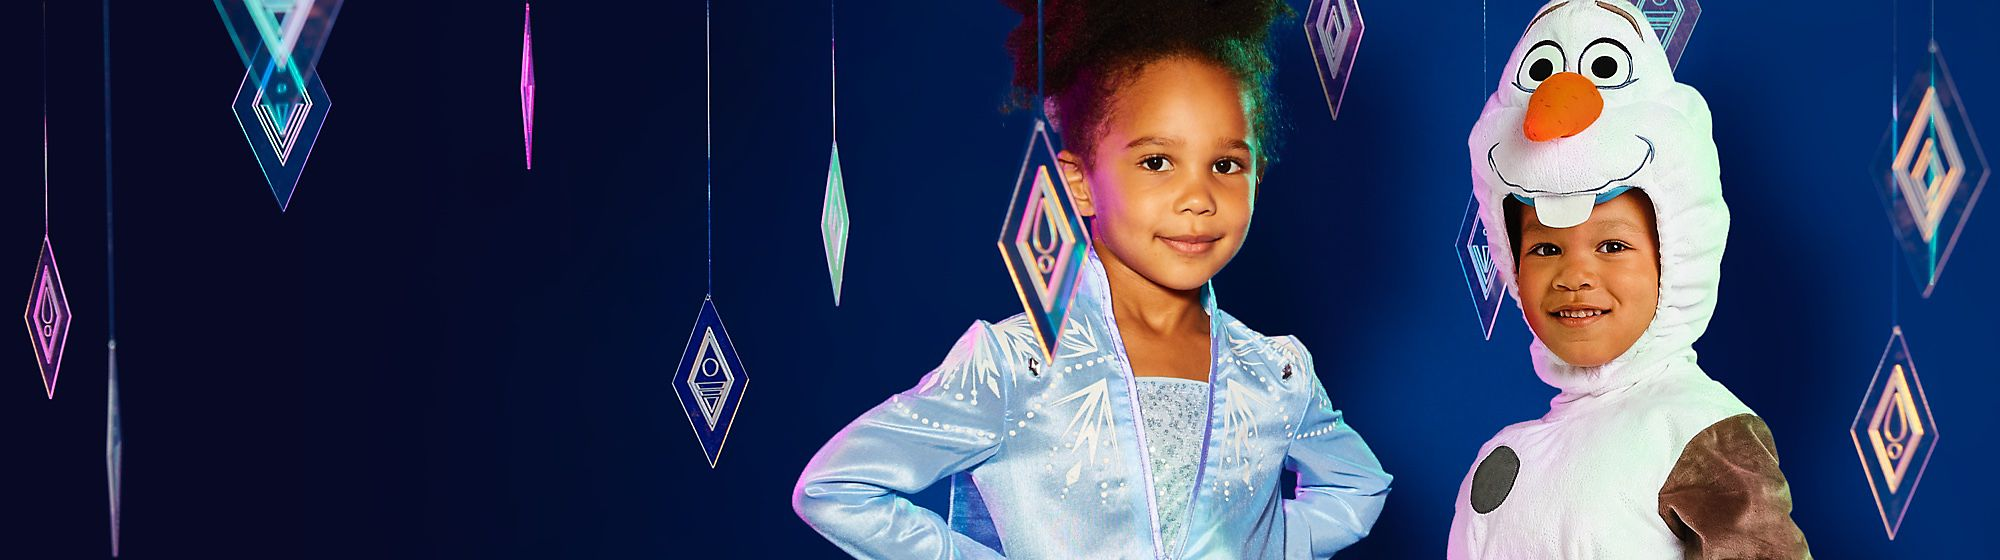 Fancy Dress Discover a magical range Official Disney, Marvel and Star Wars fancy dress costumes for the whole family. Shop an amazing collection for babies, kids and adults featuring favourites like Disney Princesses, Spider-Man, Stormtoopers and many more. DISCOVER MORE